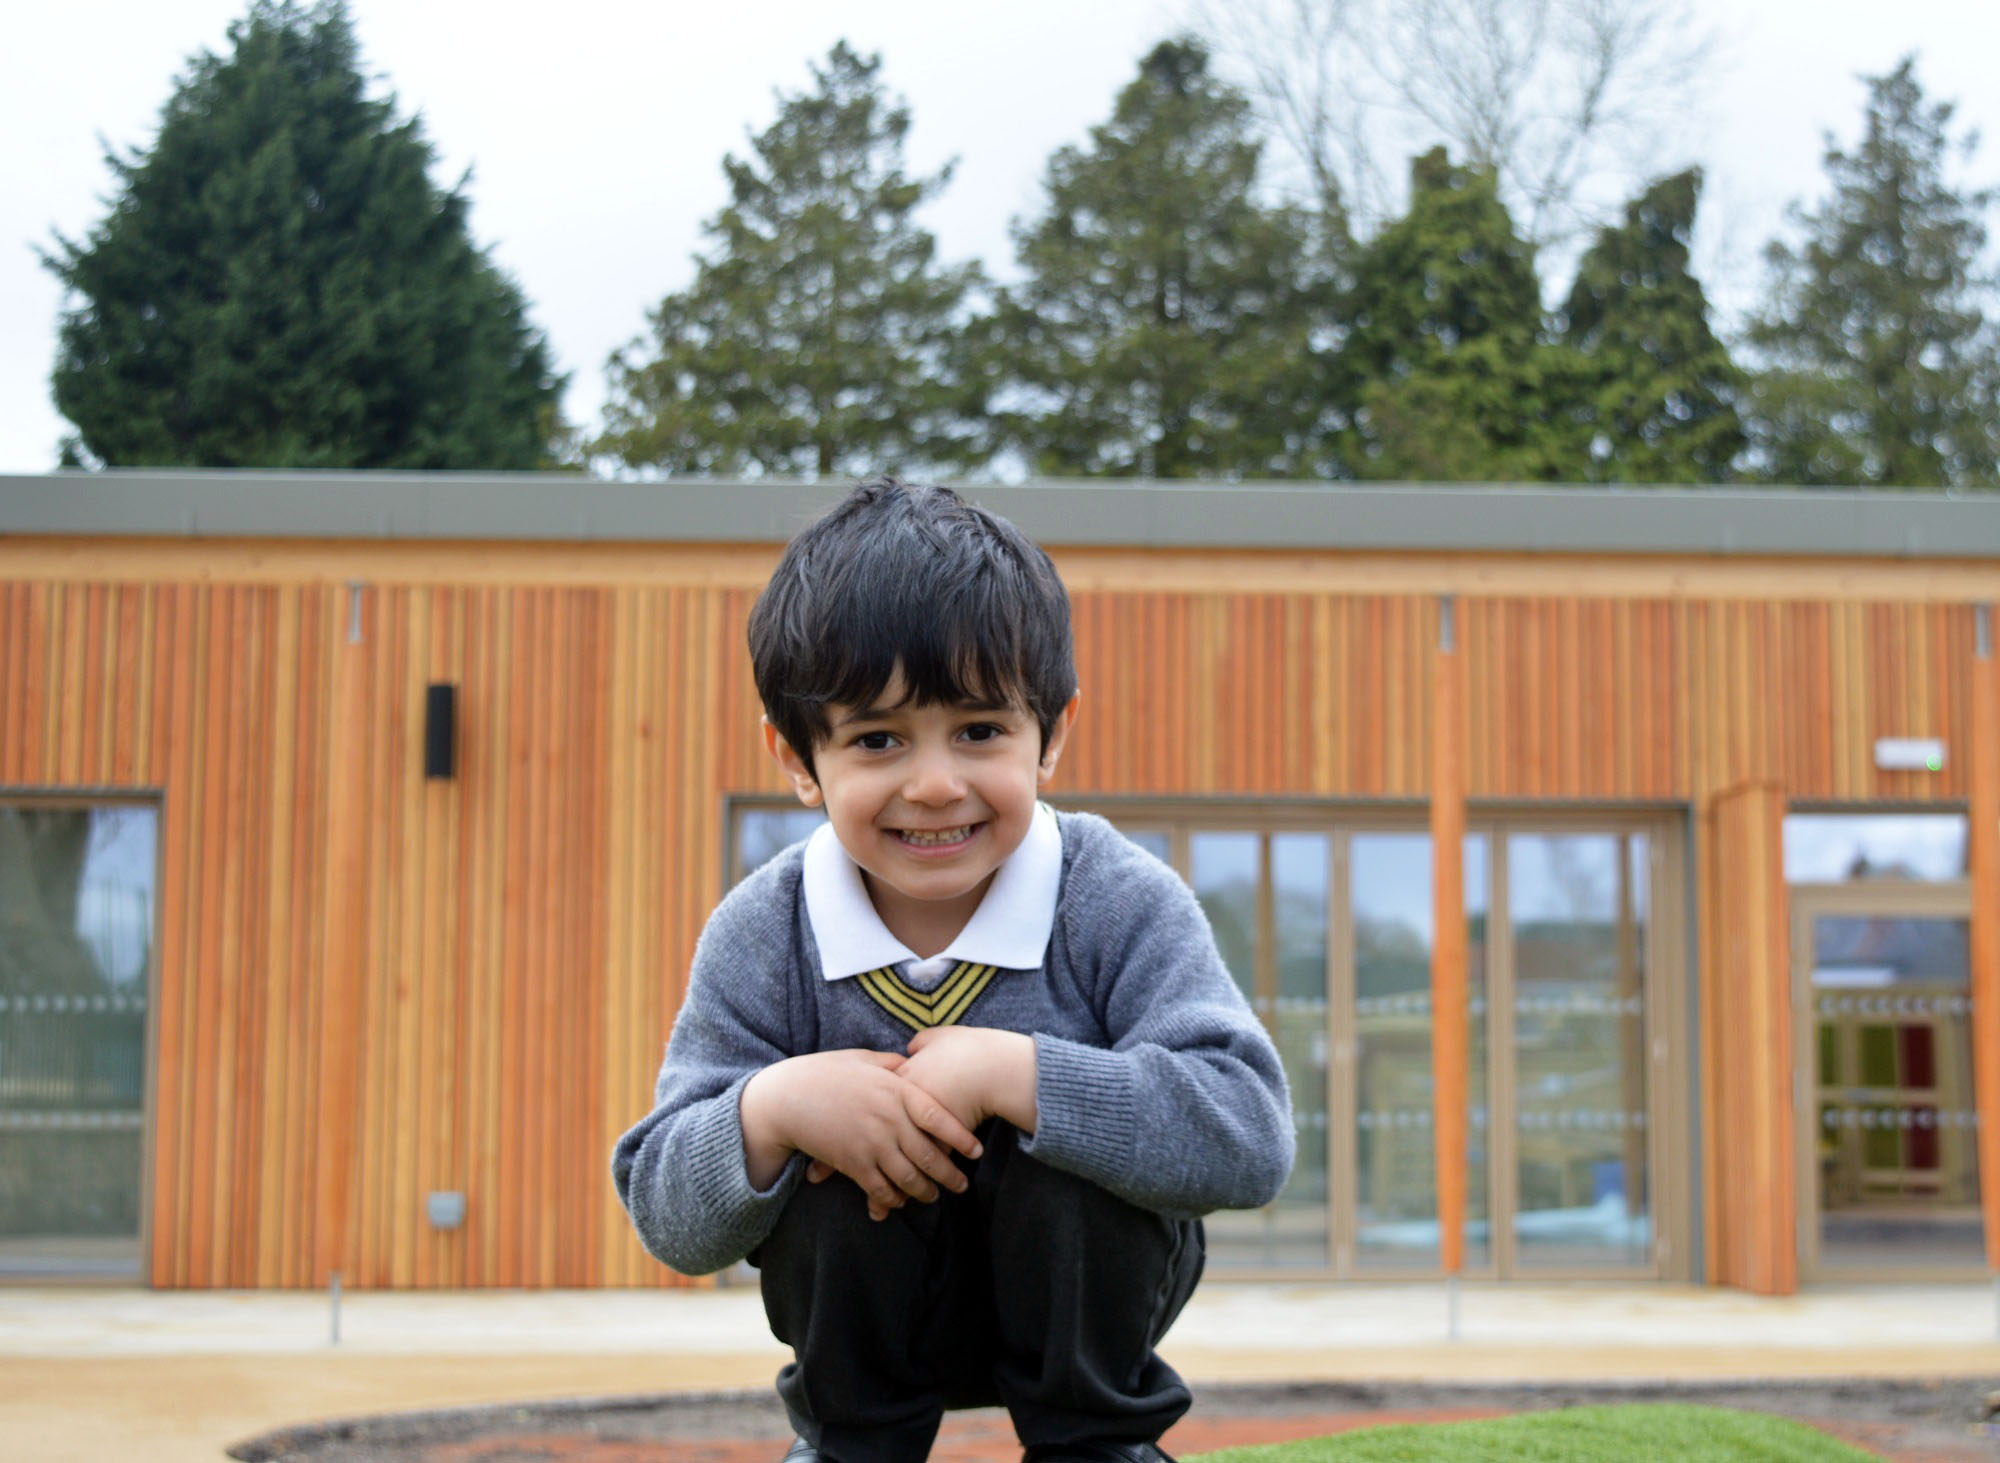 Nursery pupil smiling outside new building